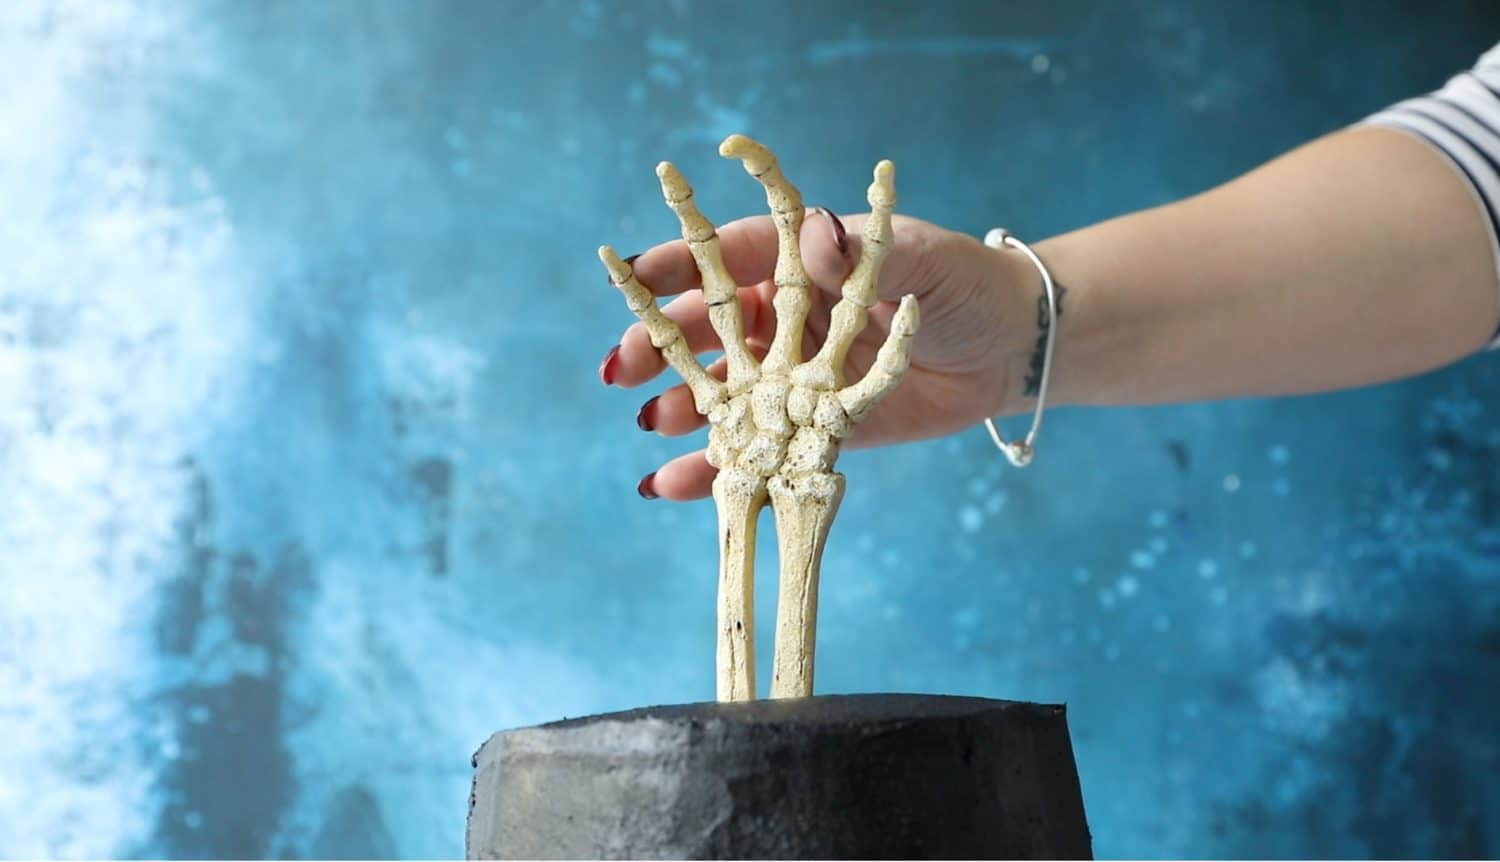 Pushing a skeleton hand into the top of a Halloween cake.